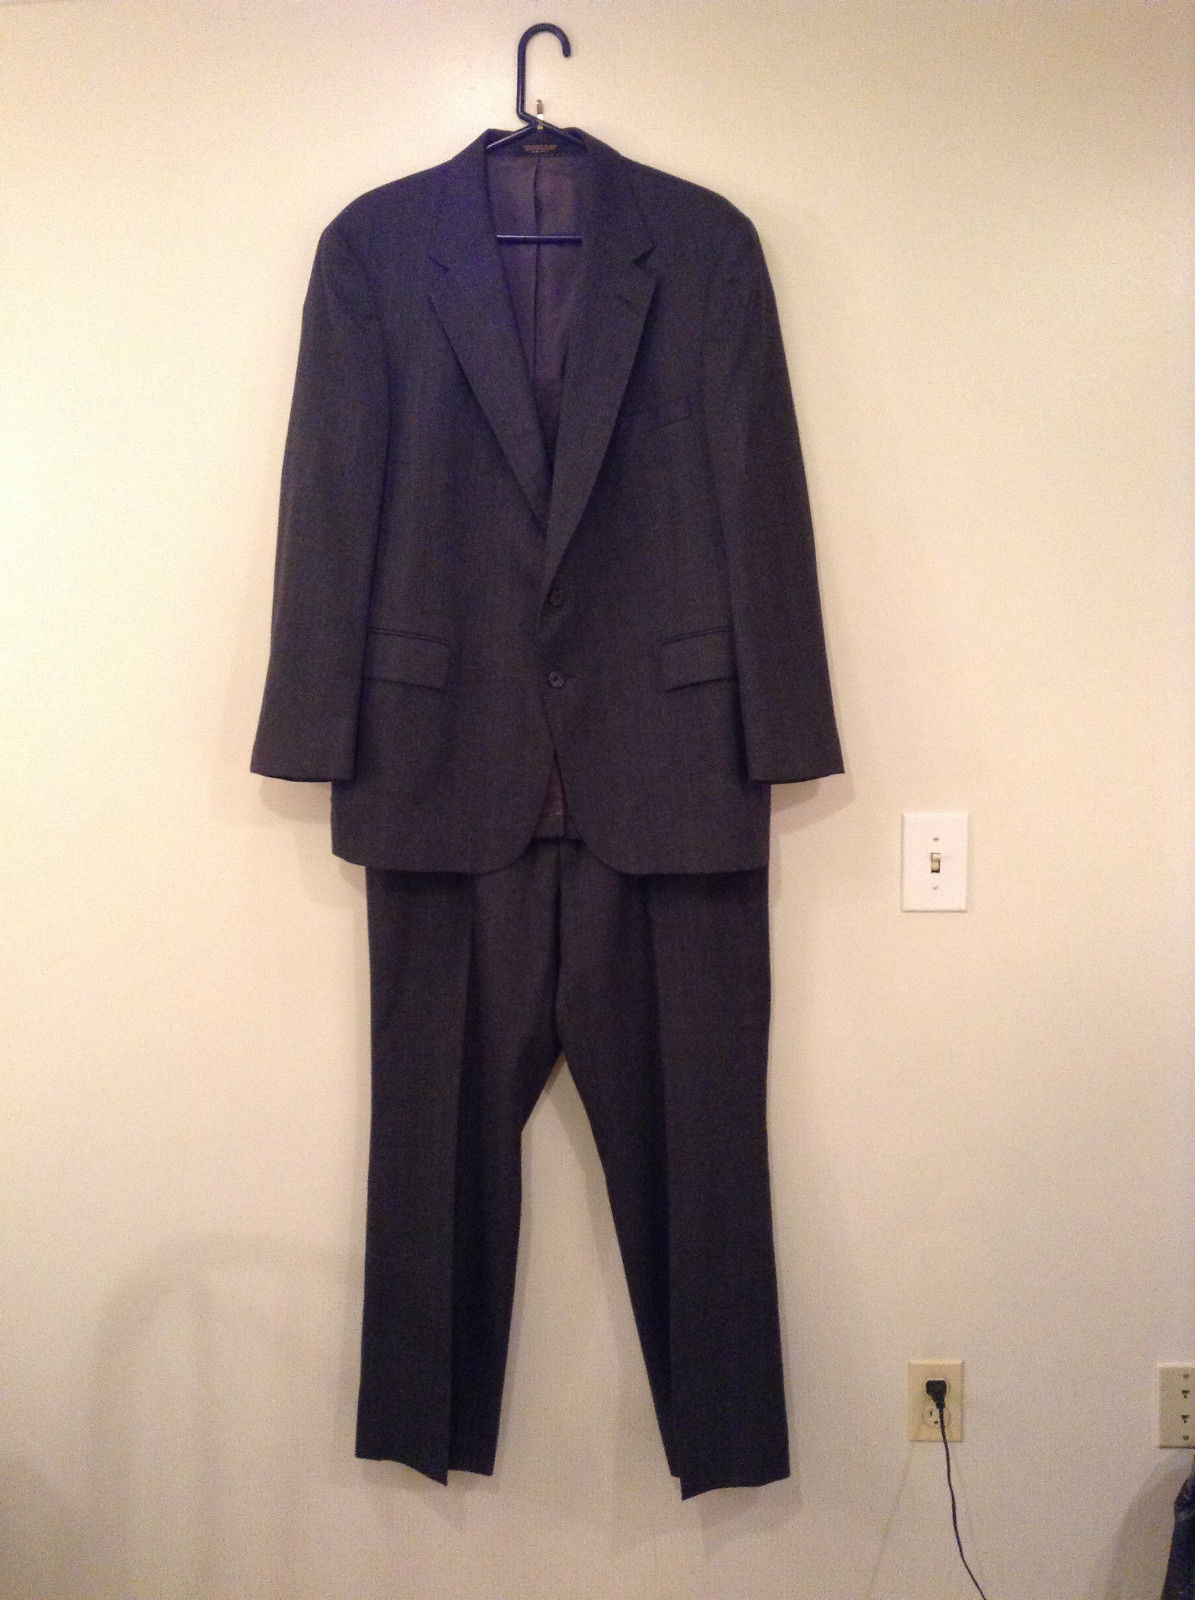 Evan Picone Gray Jacket and Pant Suit Size 46 Regular Partially Lined Jacket